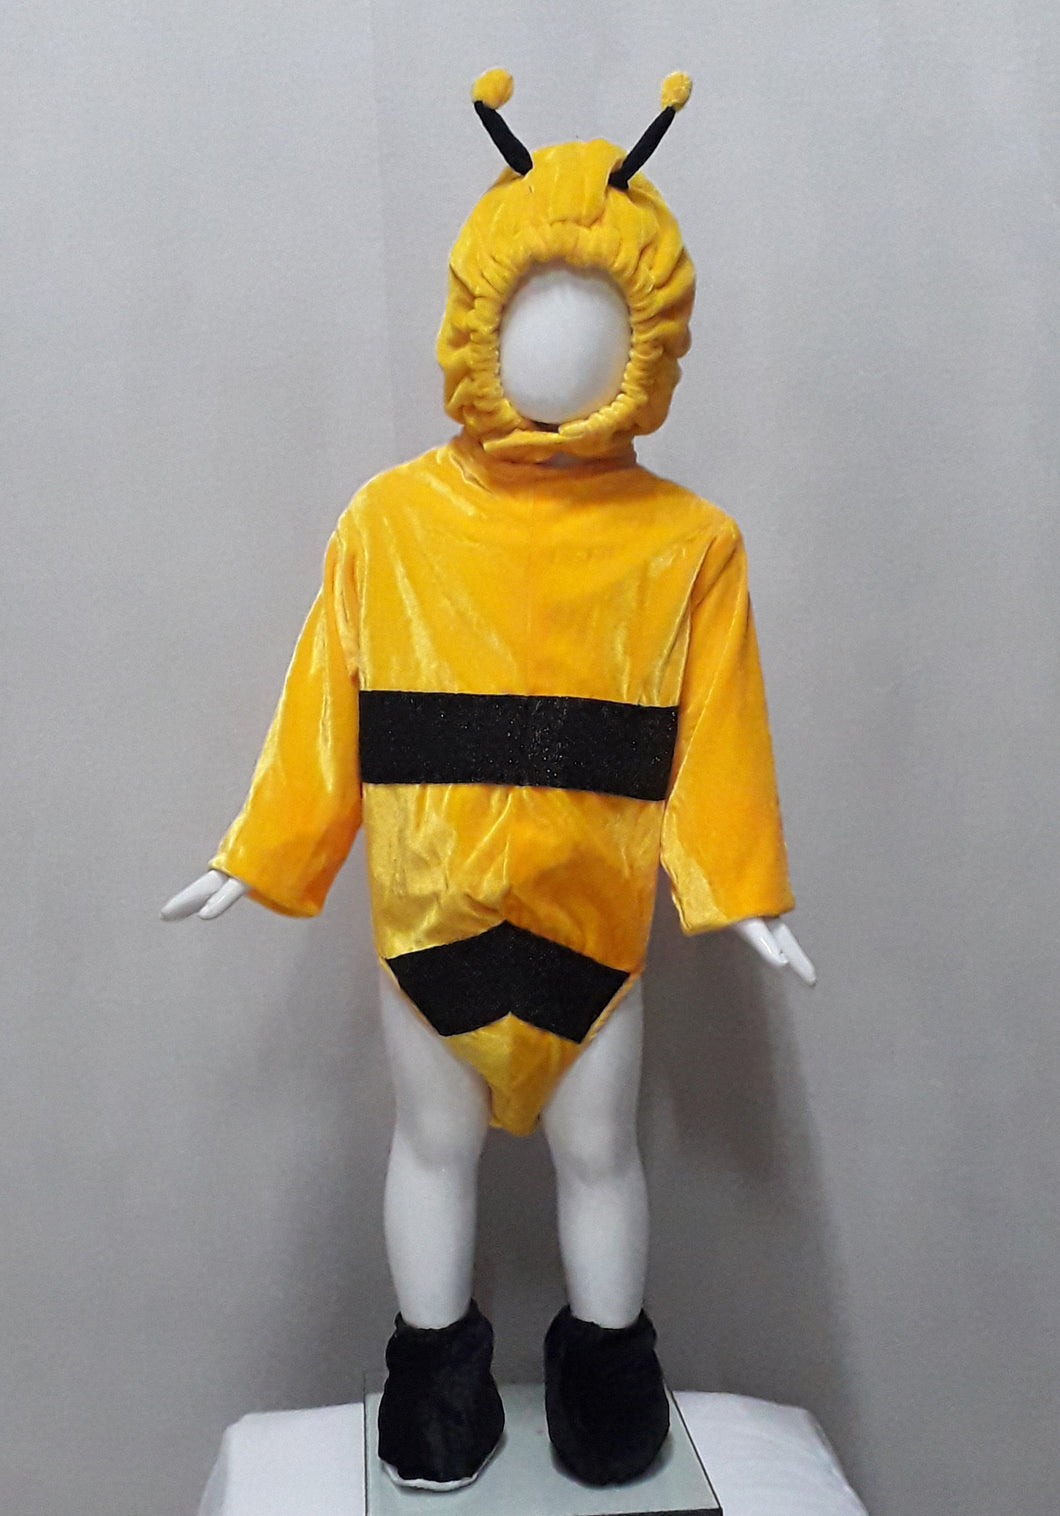 Bumblebee Costume for Toddler (1-2yo)